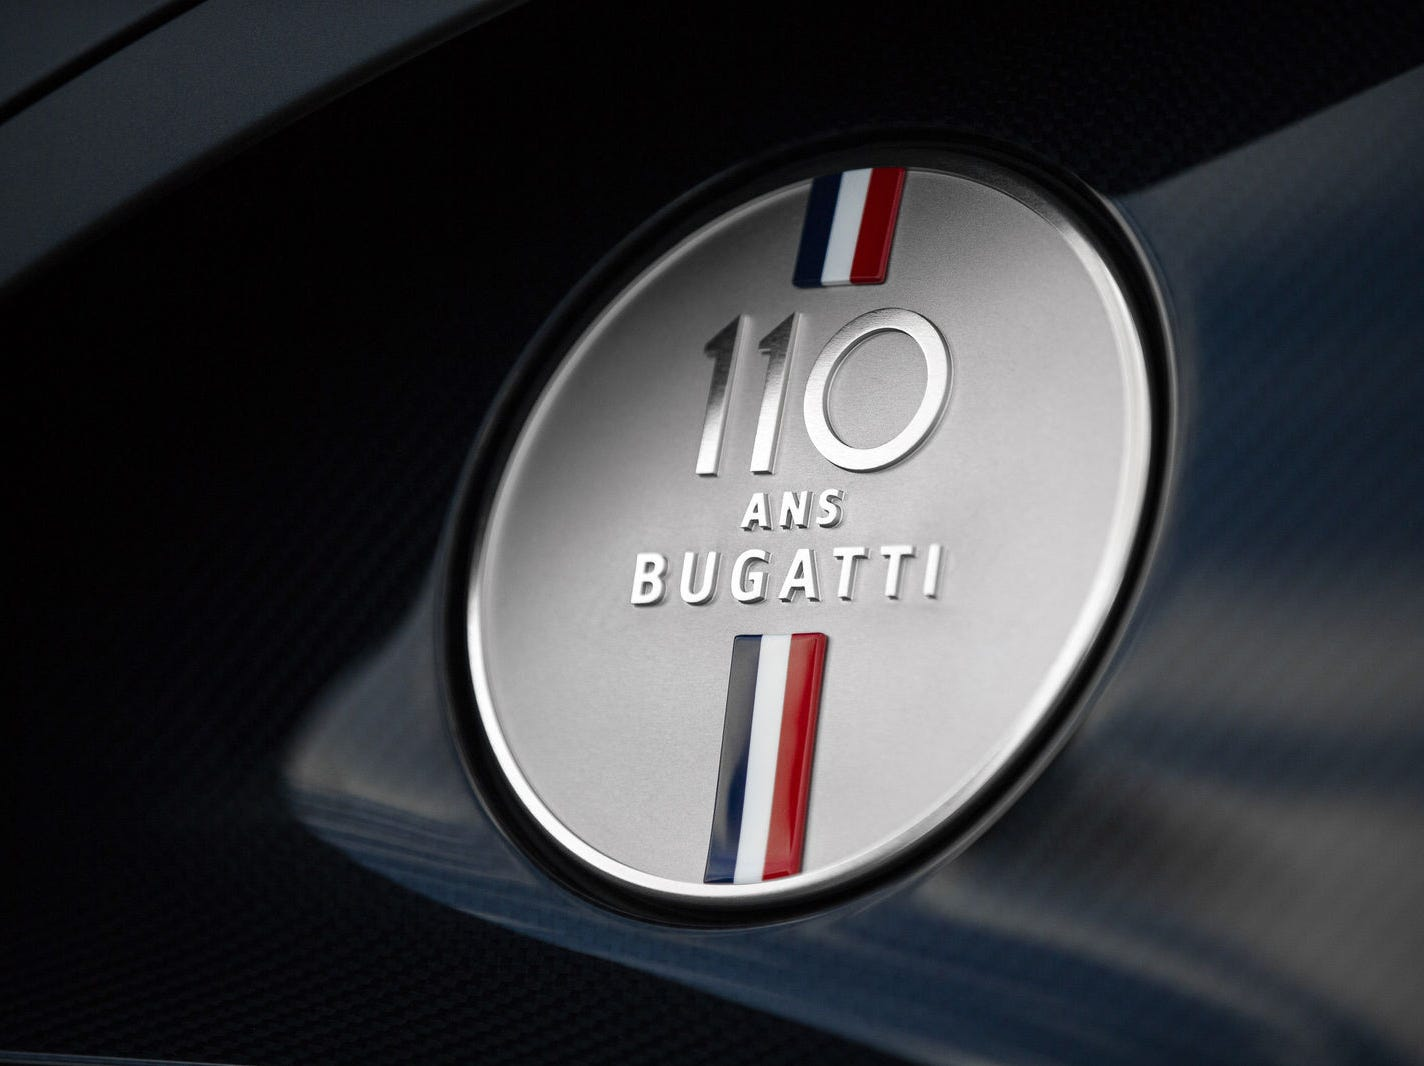 The Baby II also features a Bugatti badge made of silver.